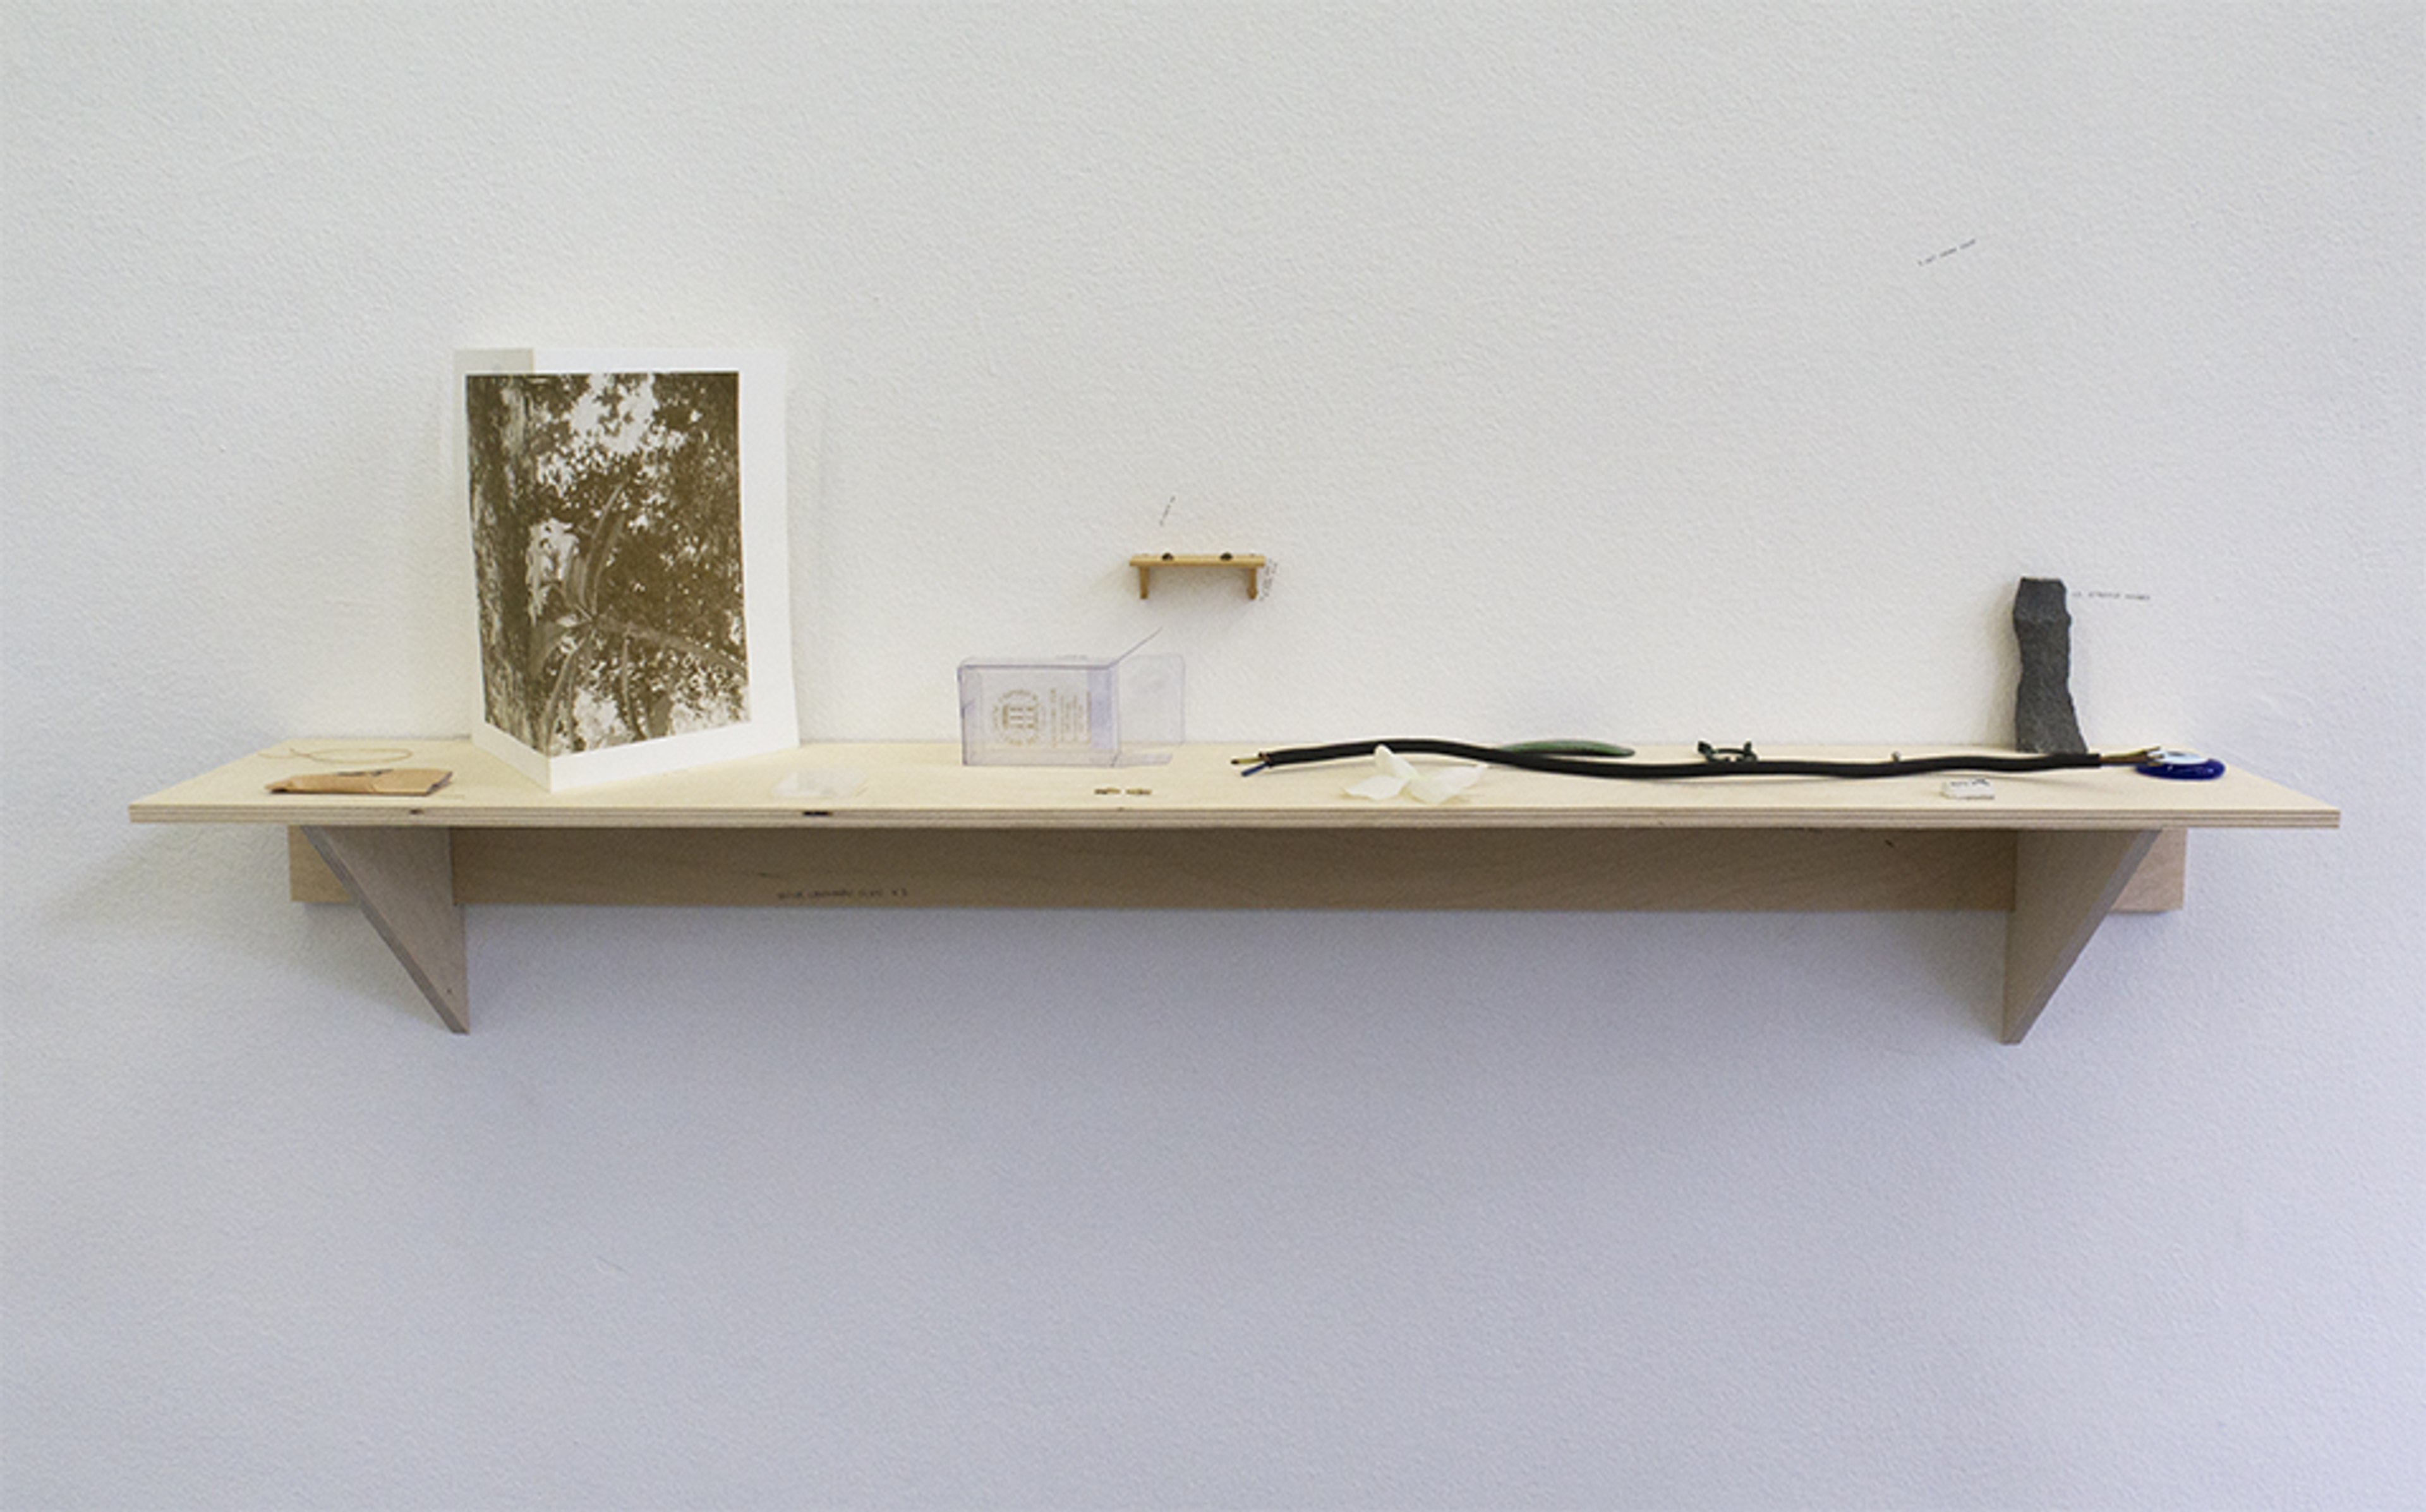 Jan Van Eyck, Maastricht, The Netherlands.  A shelf installation is made by using the hints of the quick crossword Nº13.692. Each hint is associated with one object in the display. Presented for the exhibition Betwixt and Between. Curated by Docus van der Made and Veerle Spronck